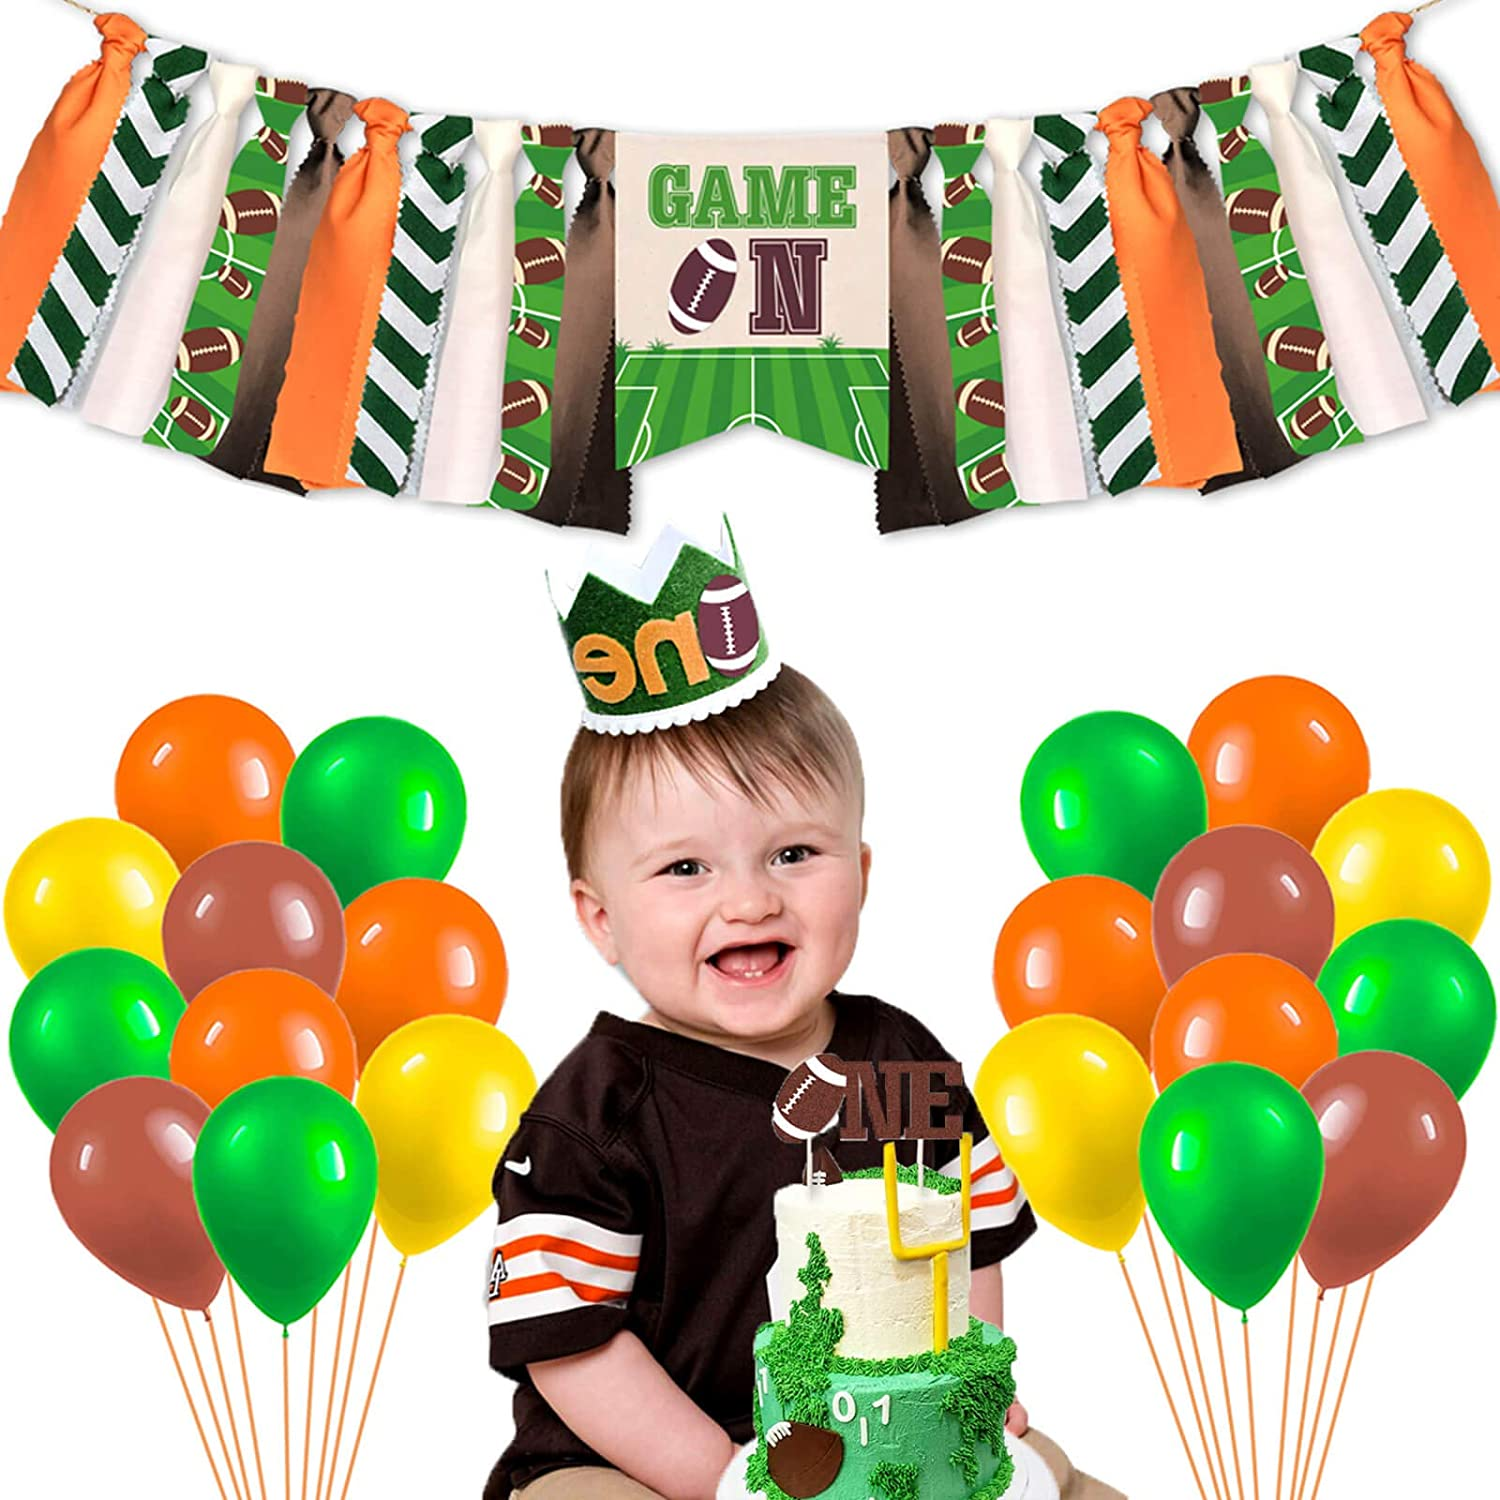 Football 1st Birthday Party Supplies Decorations, Sport Game Day Party High Chair Banner, Tailgate NFL One Cake Topper, Touchdown One Crown, Super Bowl Sunday Baby Boy 1st Photo Booth Props